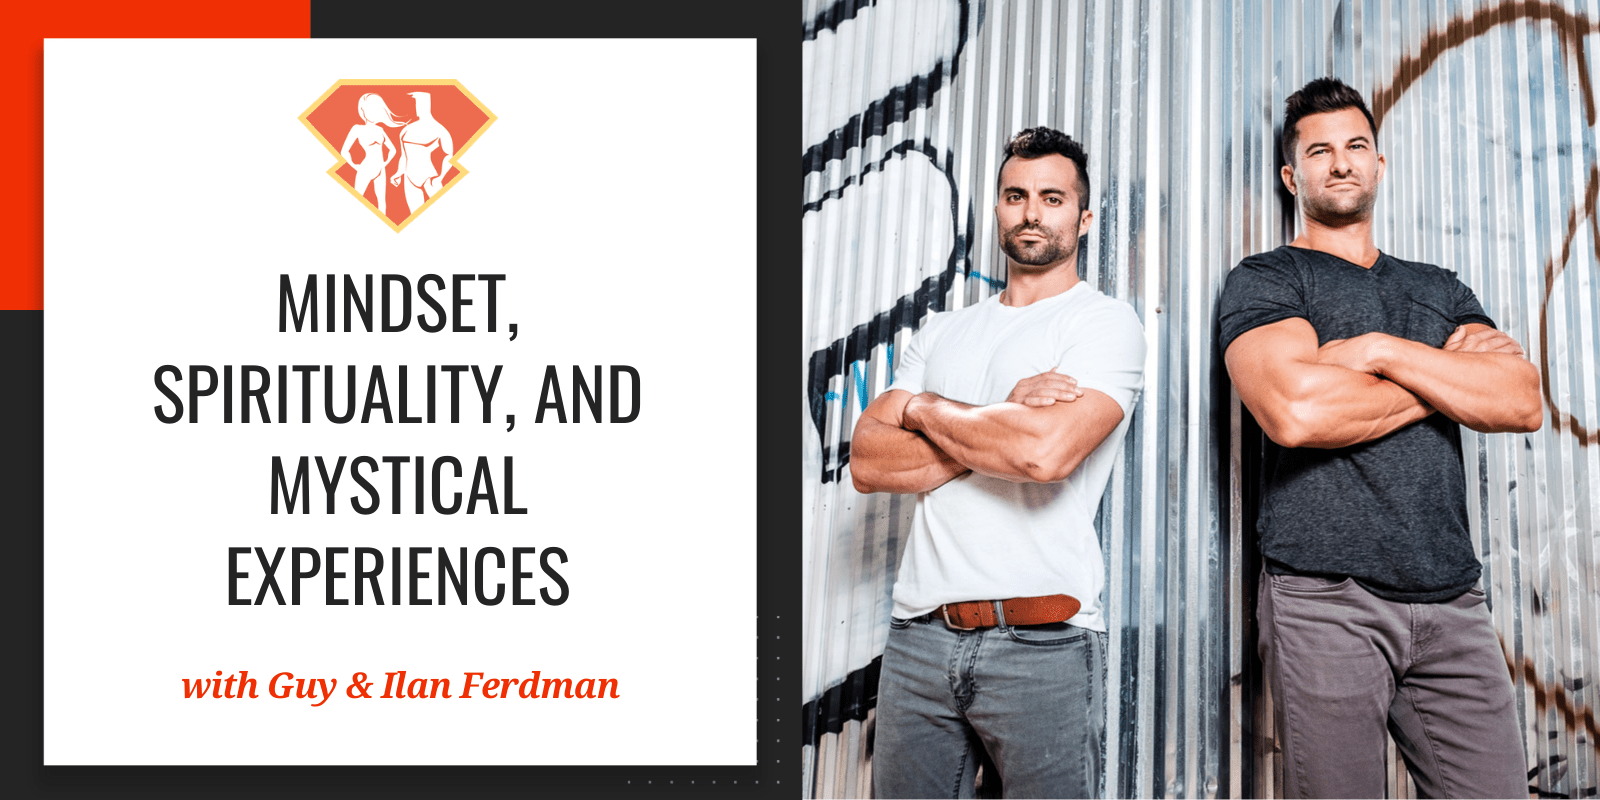 In this episode with Guy & Ilan Ferdman, we are going into the deepest roots of our mindset, and how that connects with spirituality and the mystical.